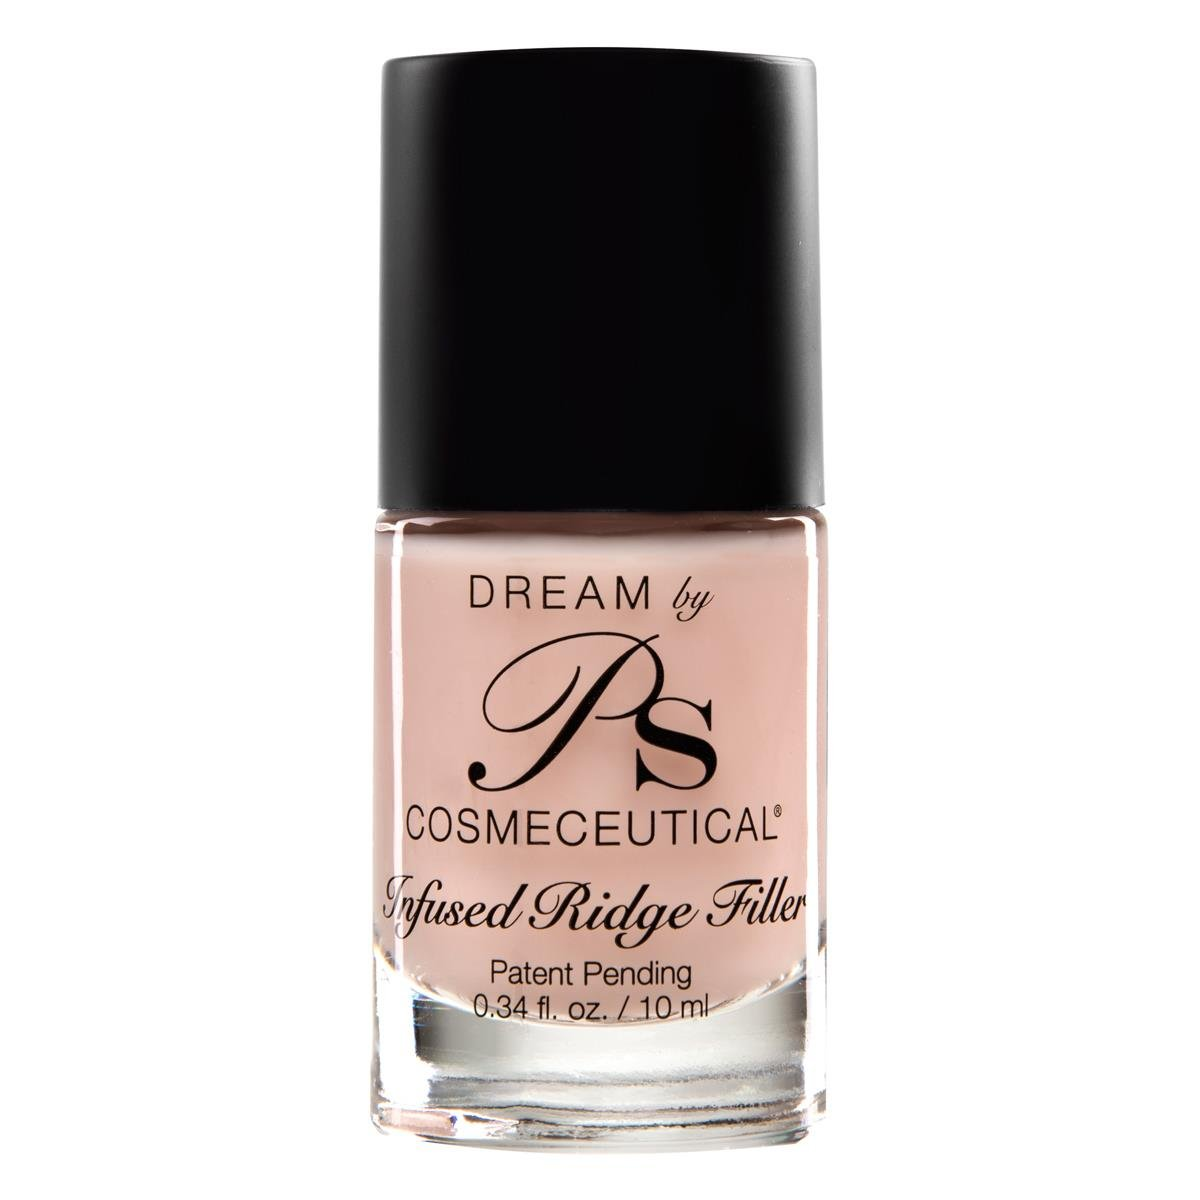 PS Polish Natural Nail Polish Foundation Ridge-Filler, Nail-Strengthener, Safe Non-Toxic Professional Nail Art and Polish Ridge Filling Base Coat, Best Polishes for Manicure, Pedicure - MSRP $17.99